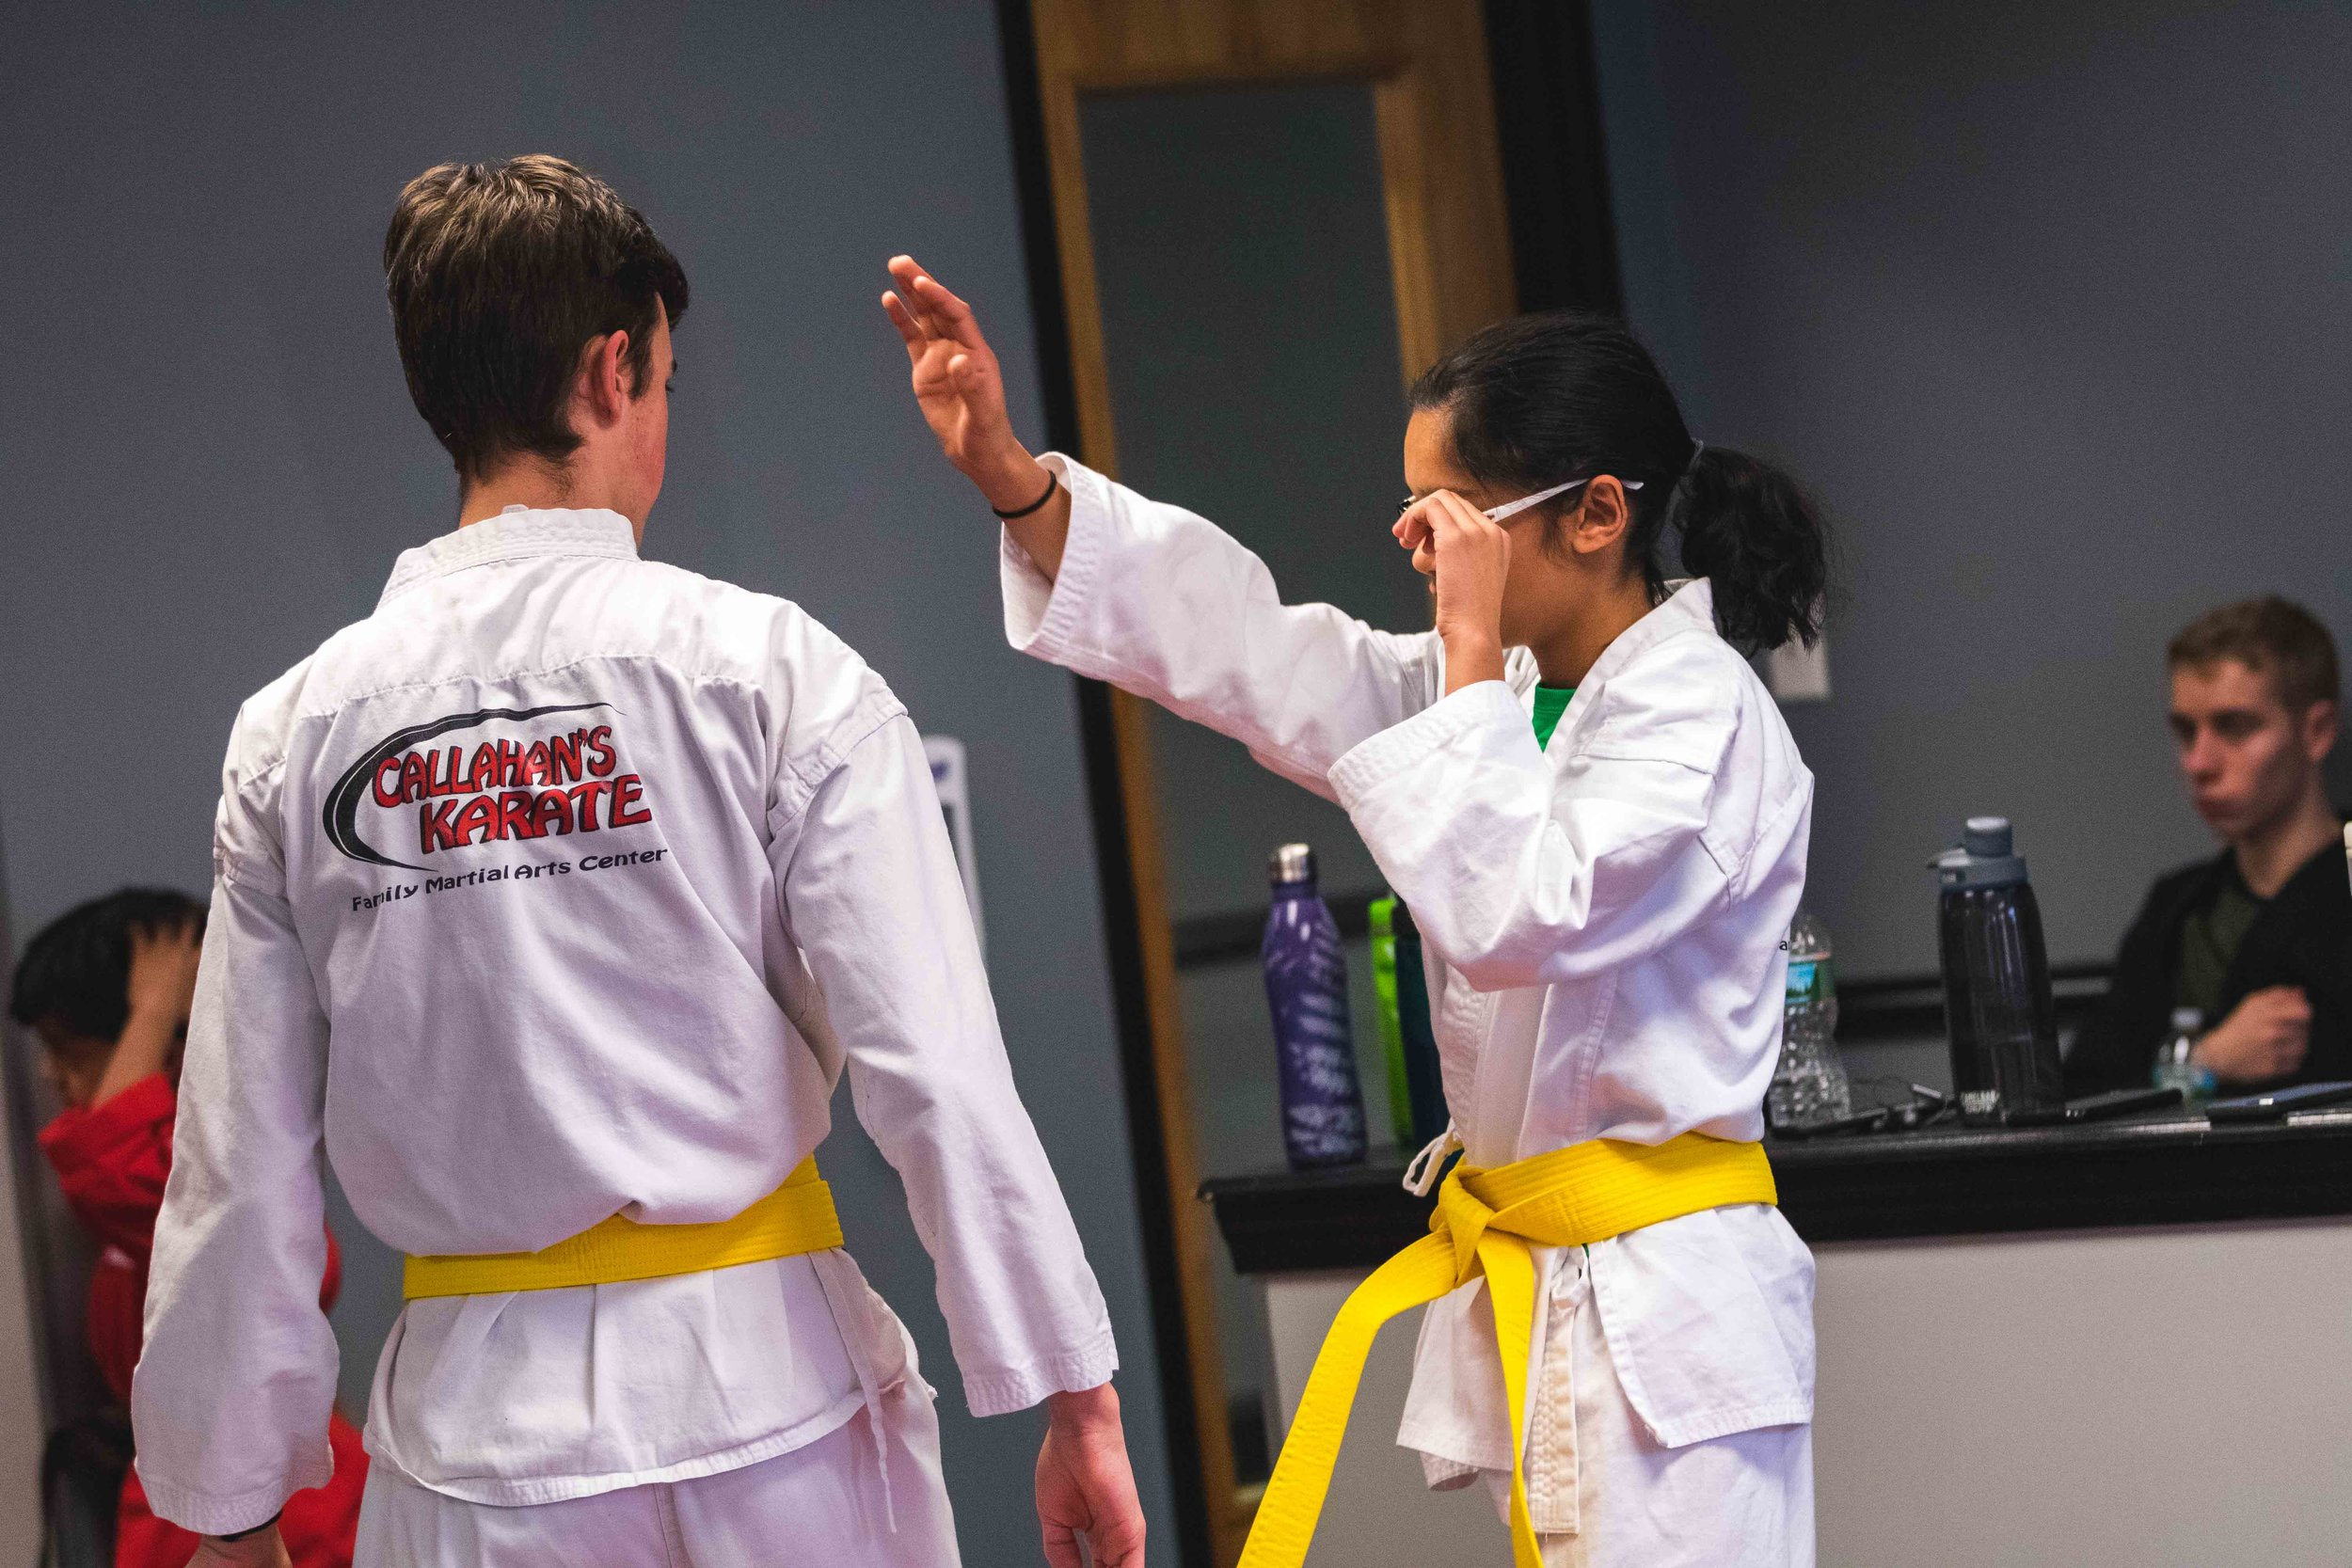 Martial Arts Classes for Teenage Girls and Boys in Bedford Massachusetts at Callahan's Karate.jpg